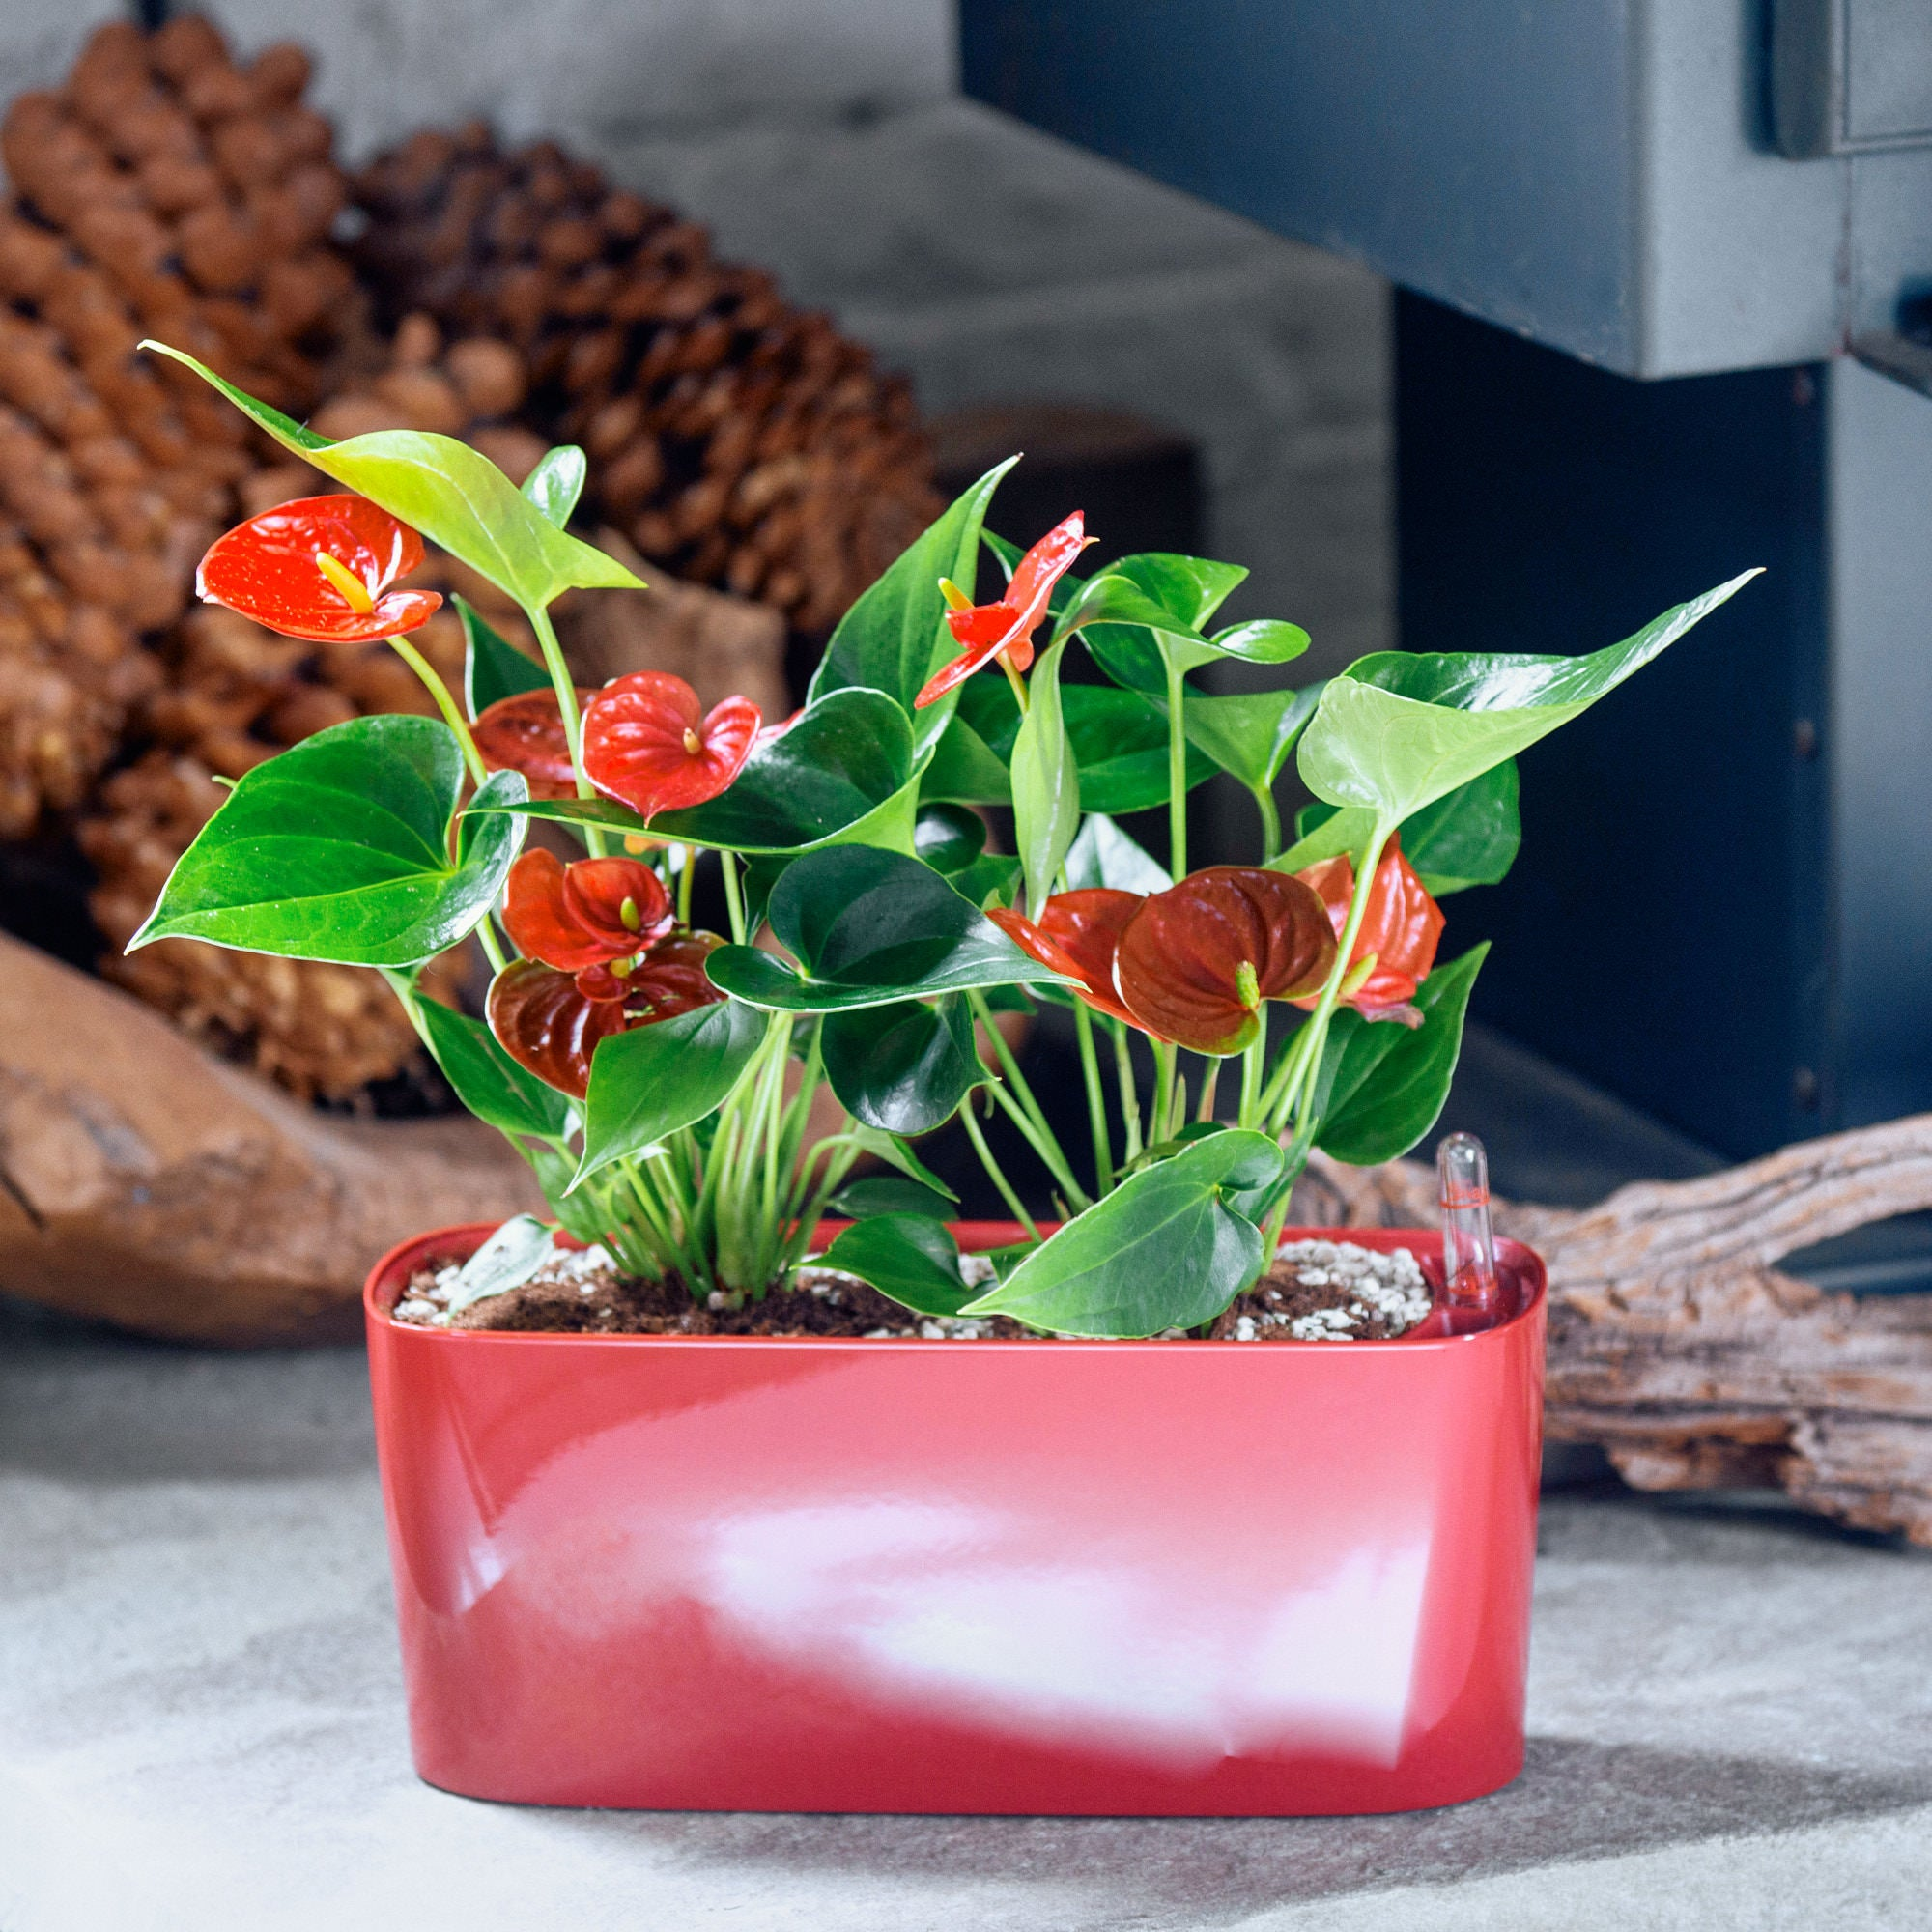 Anthurium potted in Lechuza windowsill mini red planter - My City Plants